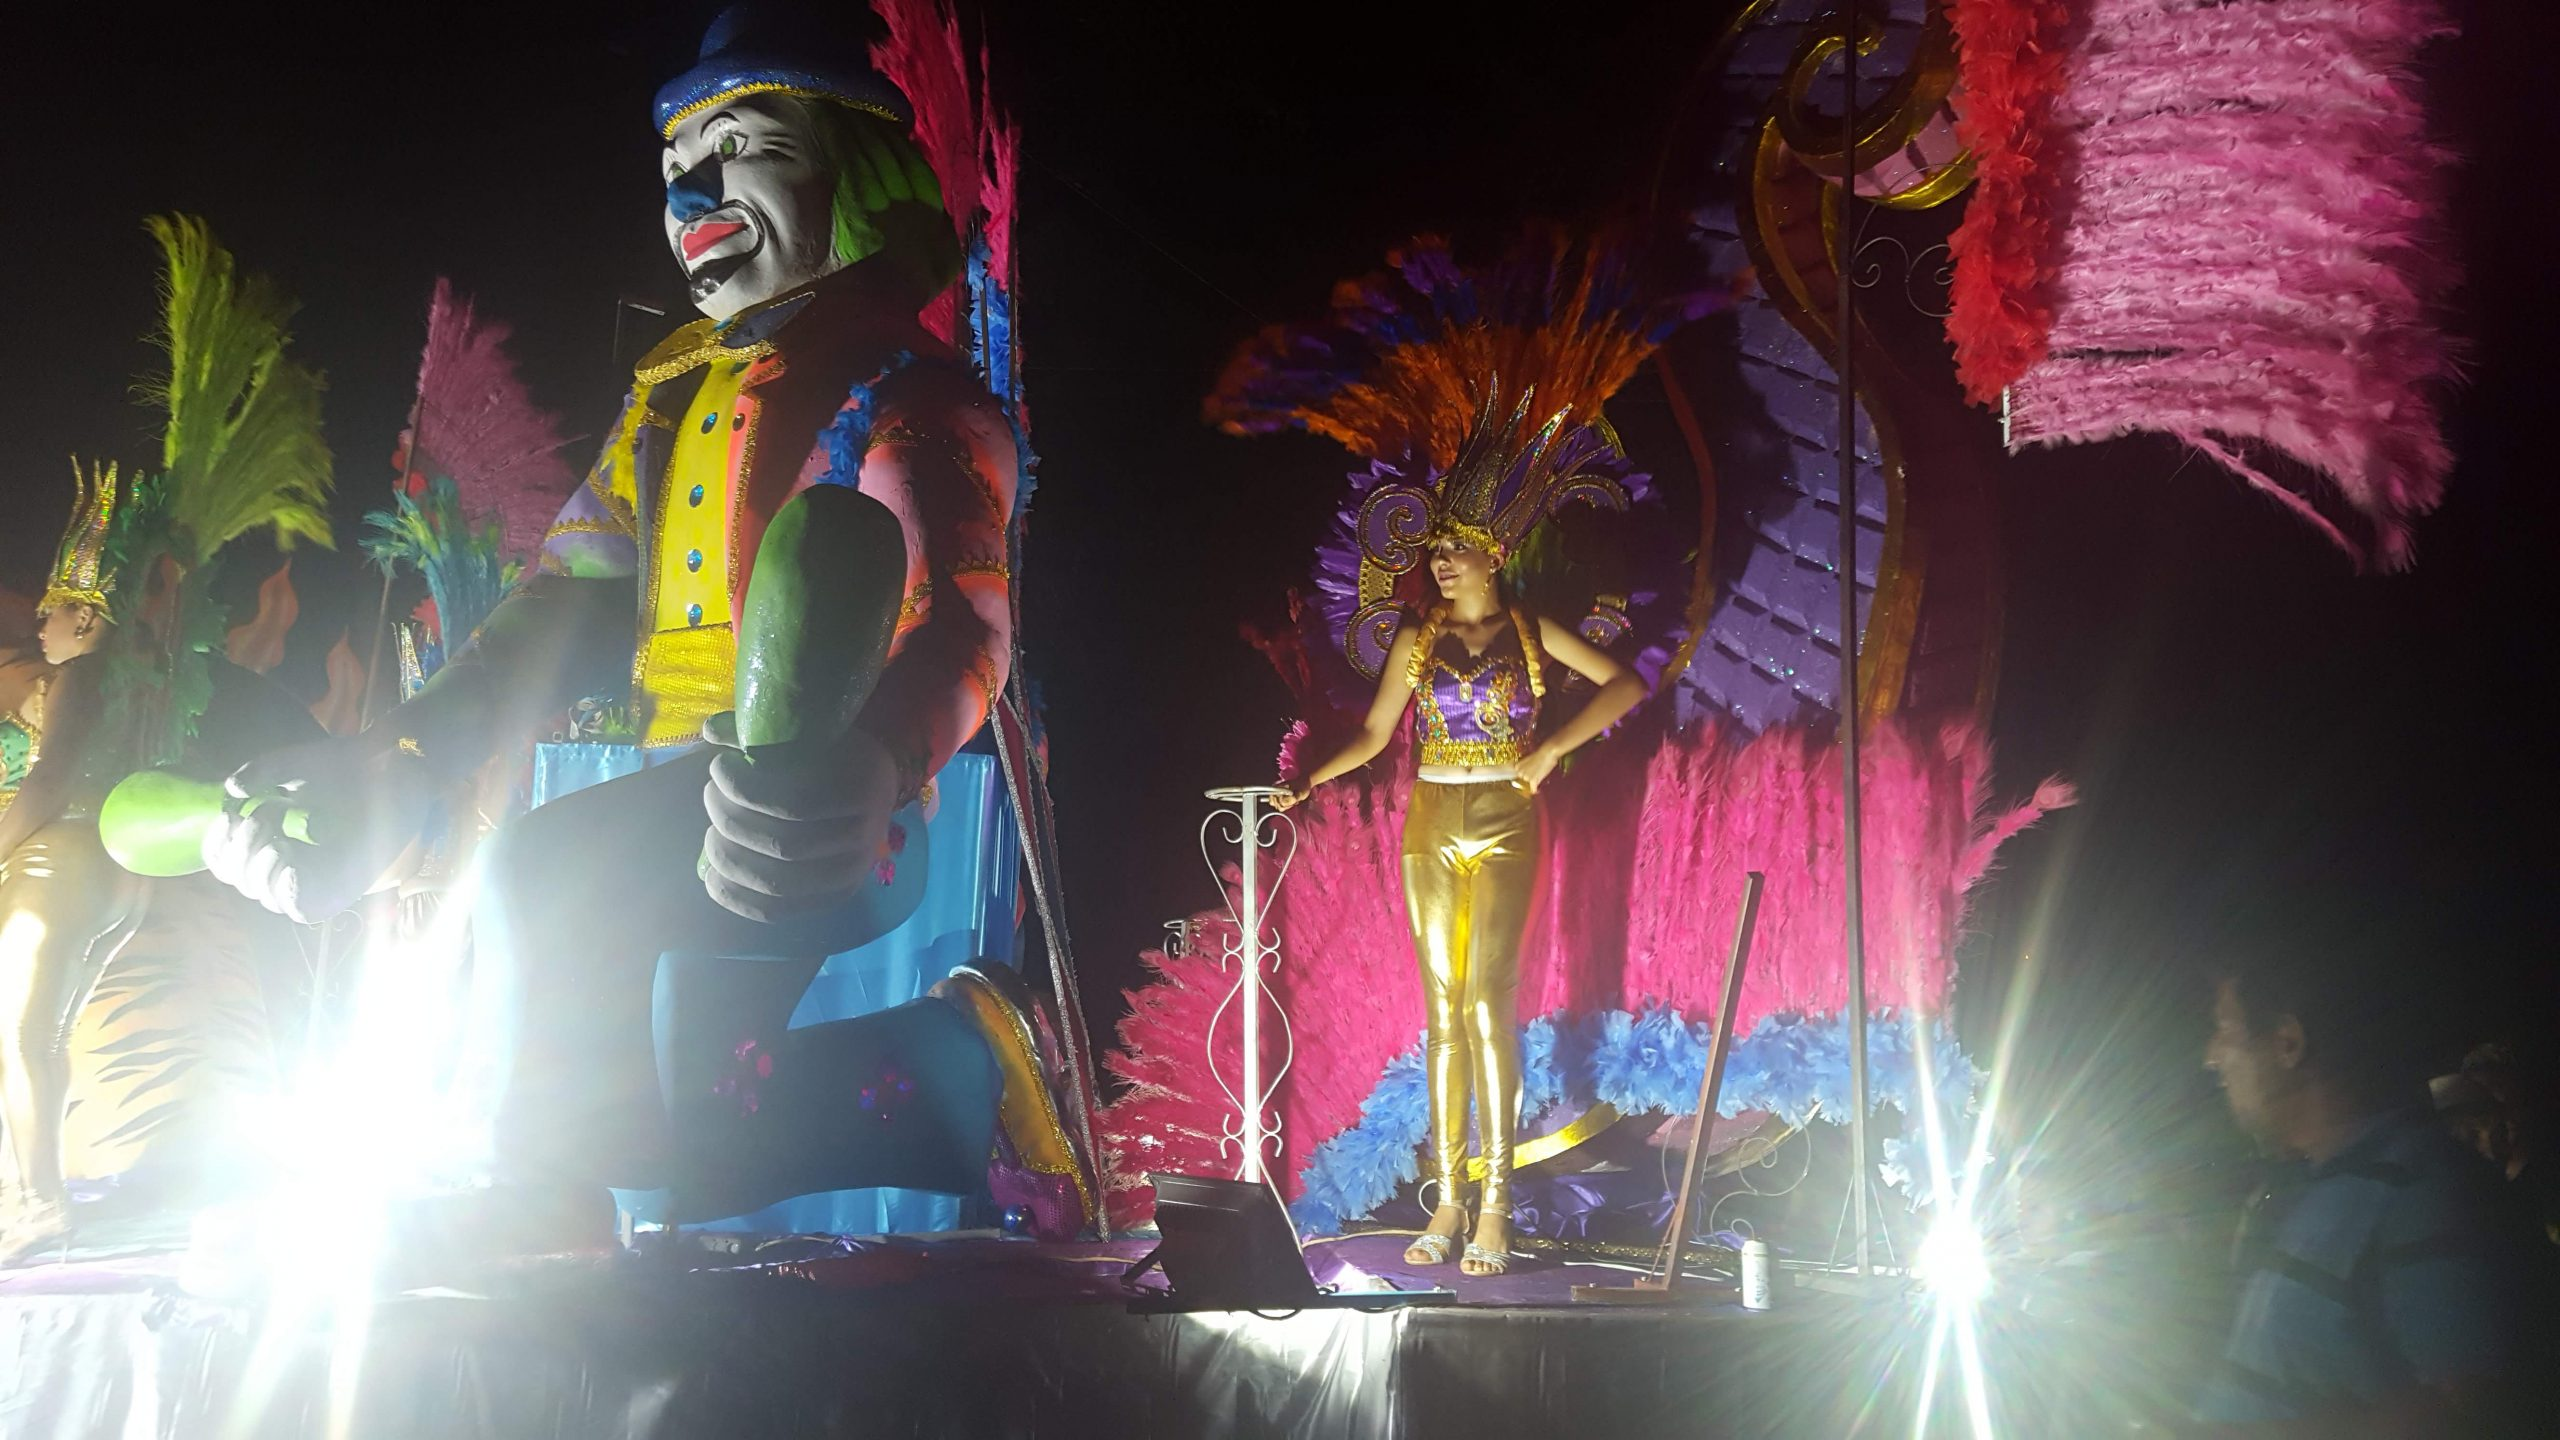 Float and queen at Las Lajas carnival